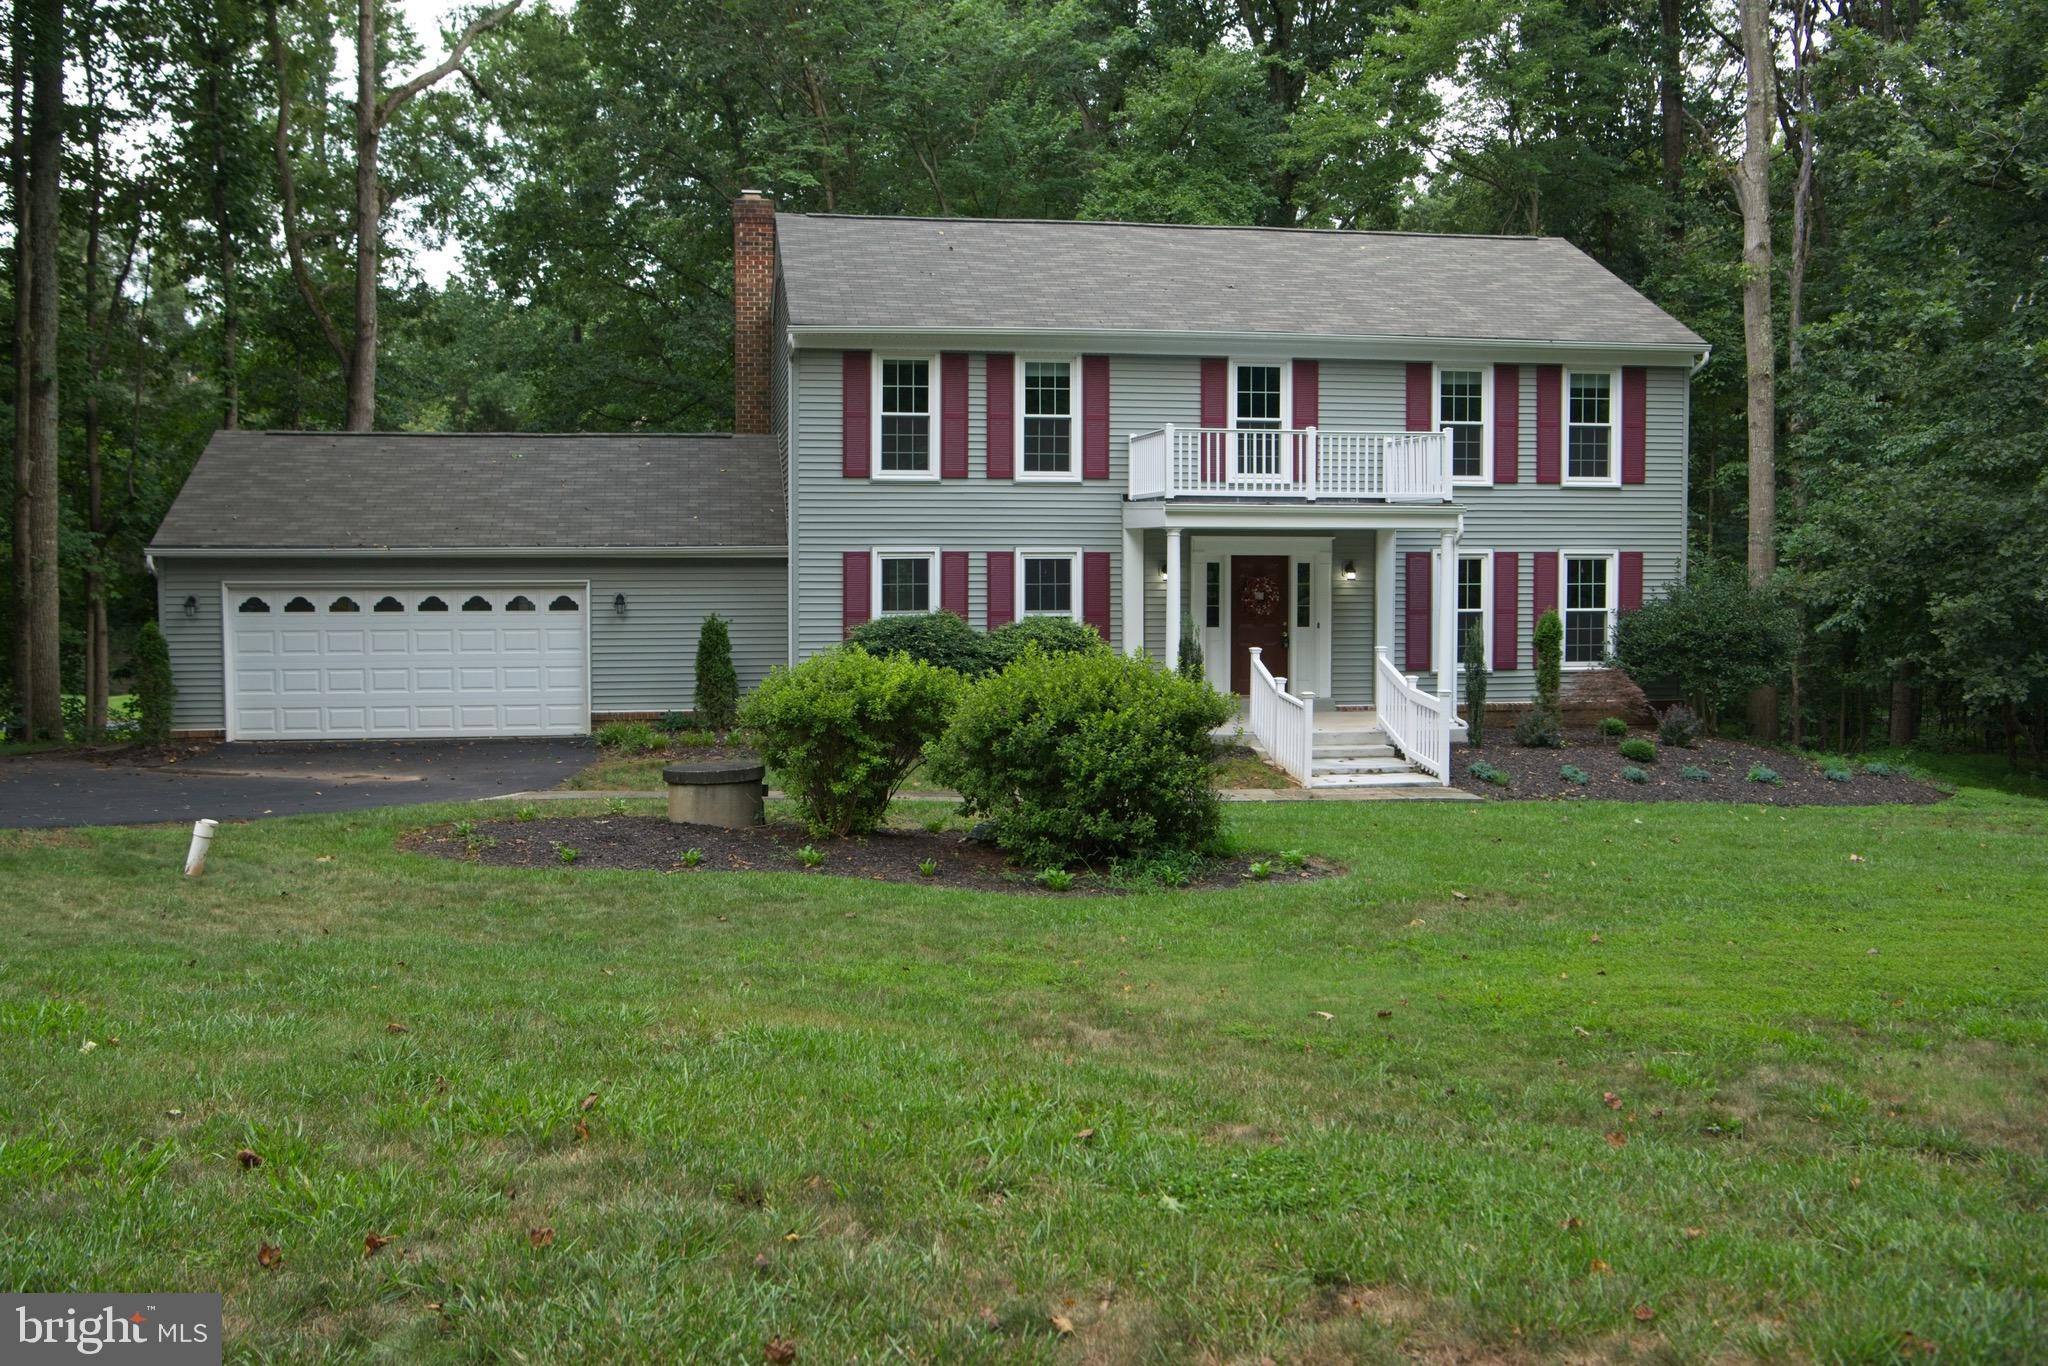 A true find!!  Large, stately 4-bedroom, 2.5 bath colonial on a quiet street in the highly desirable